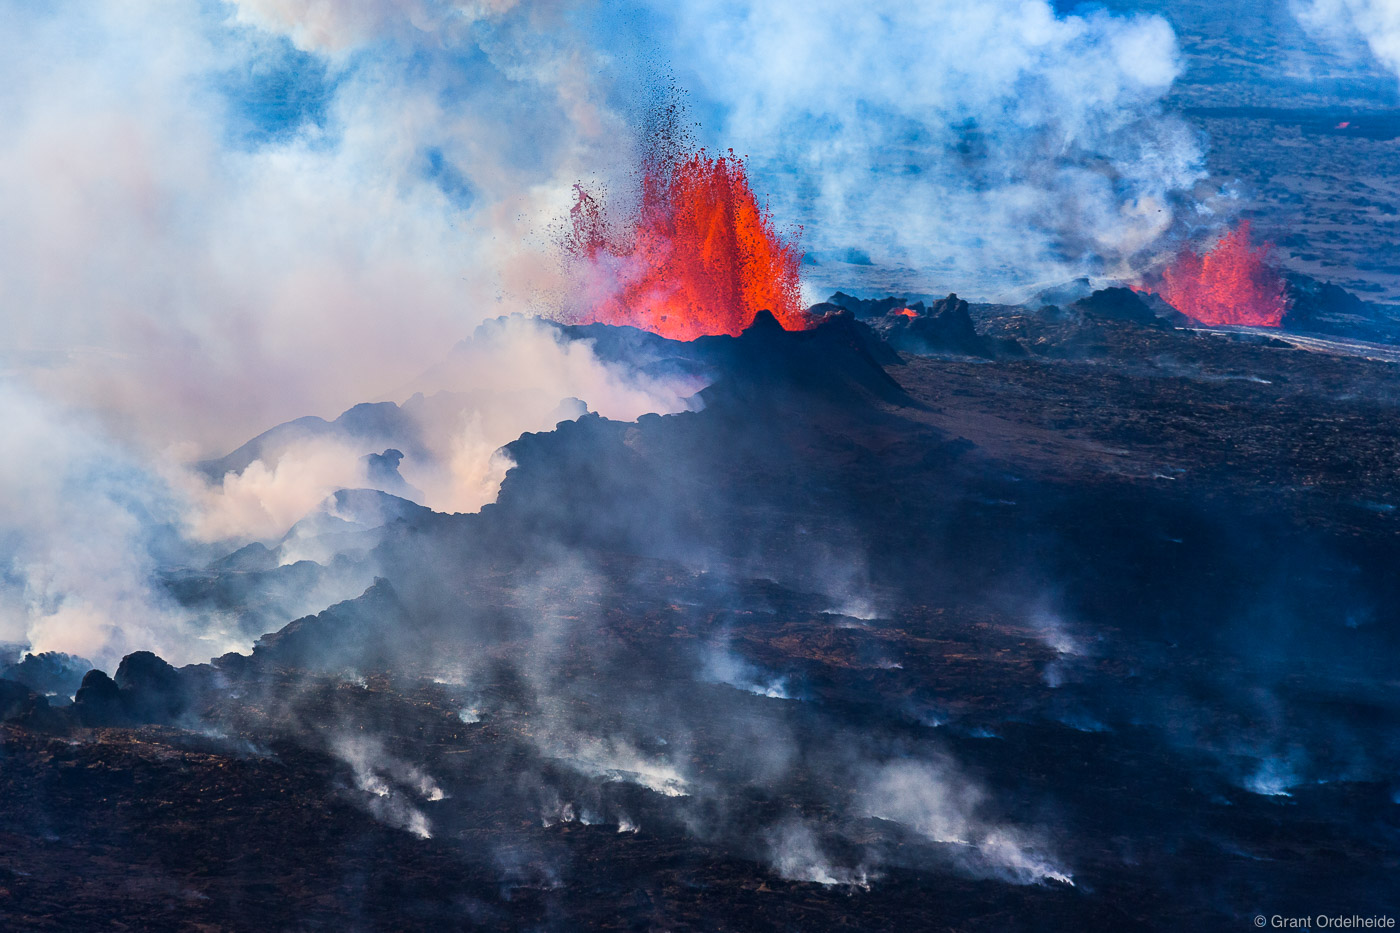 A lava eruption and steam from a fissure near the Bardarbunga volcano in Iceland's Holuhraun lava field.